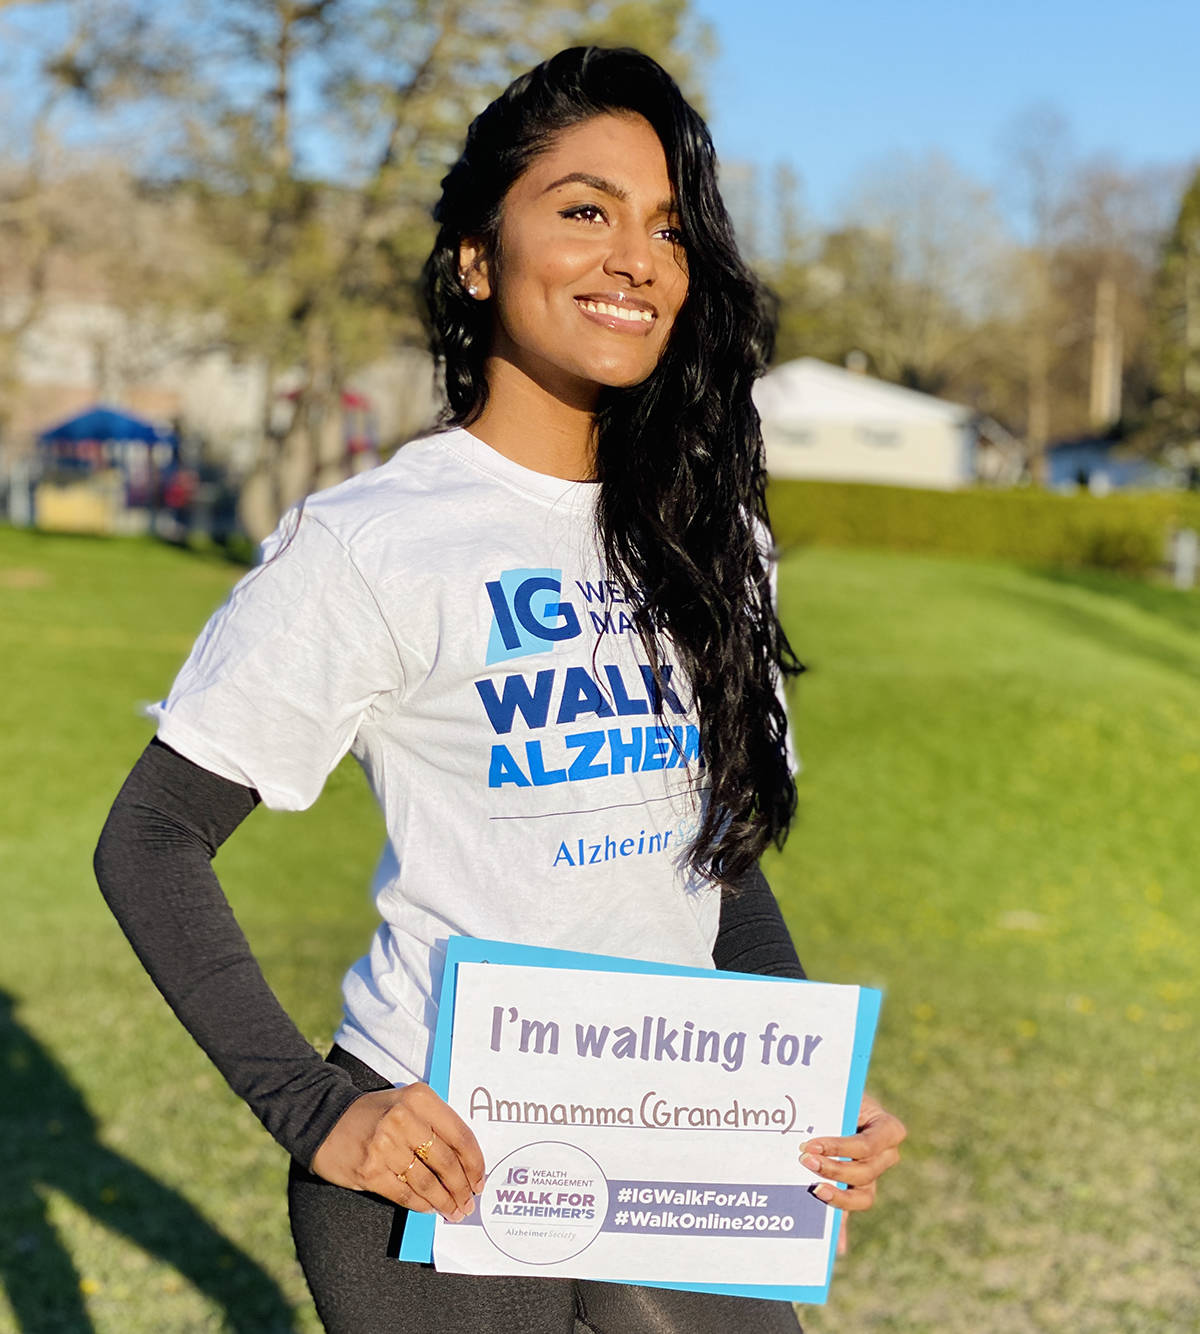 Event participants walk where they want, when they want throughout the month of May.